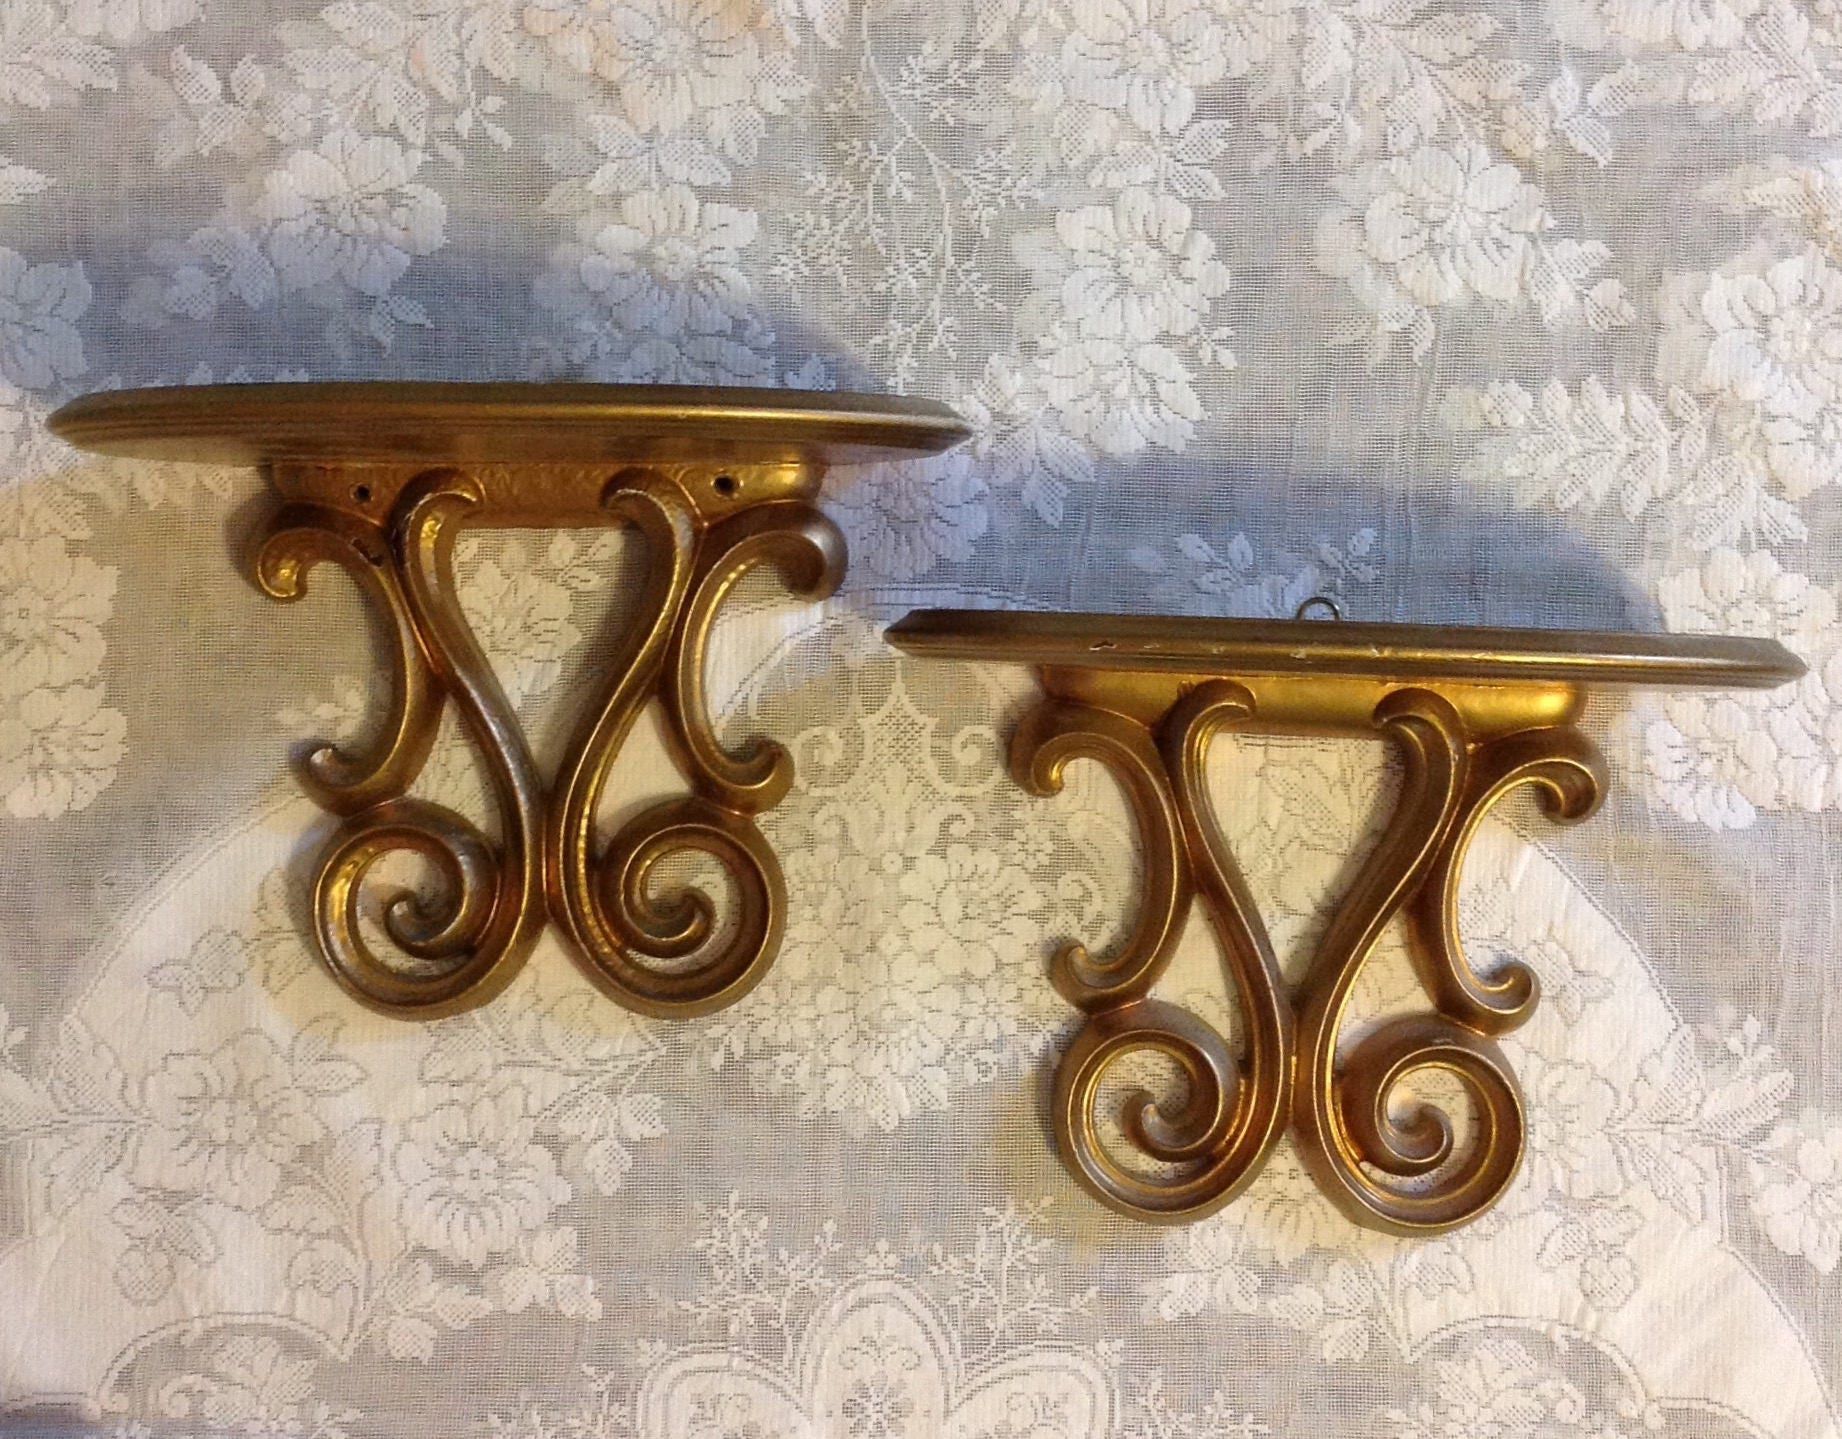 Pair wall sconce shelves ornate gold wood wooden shelf plate